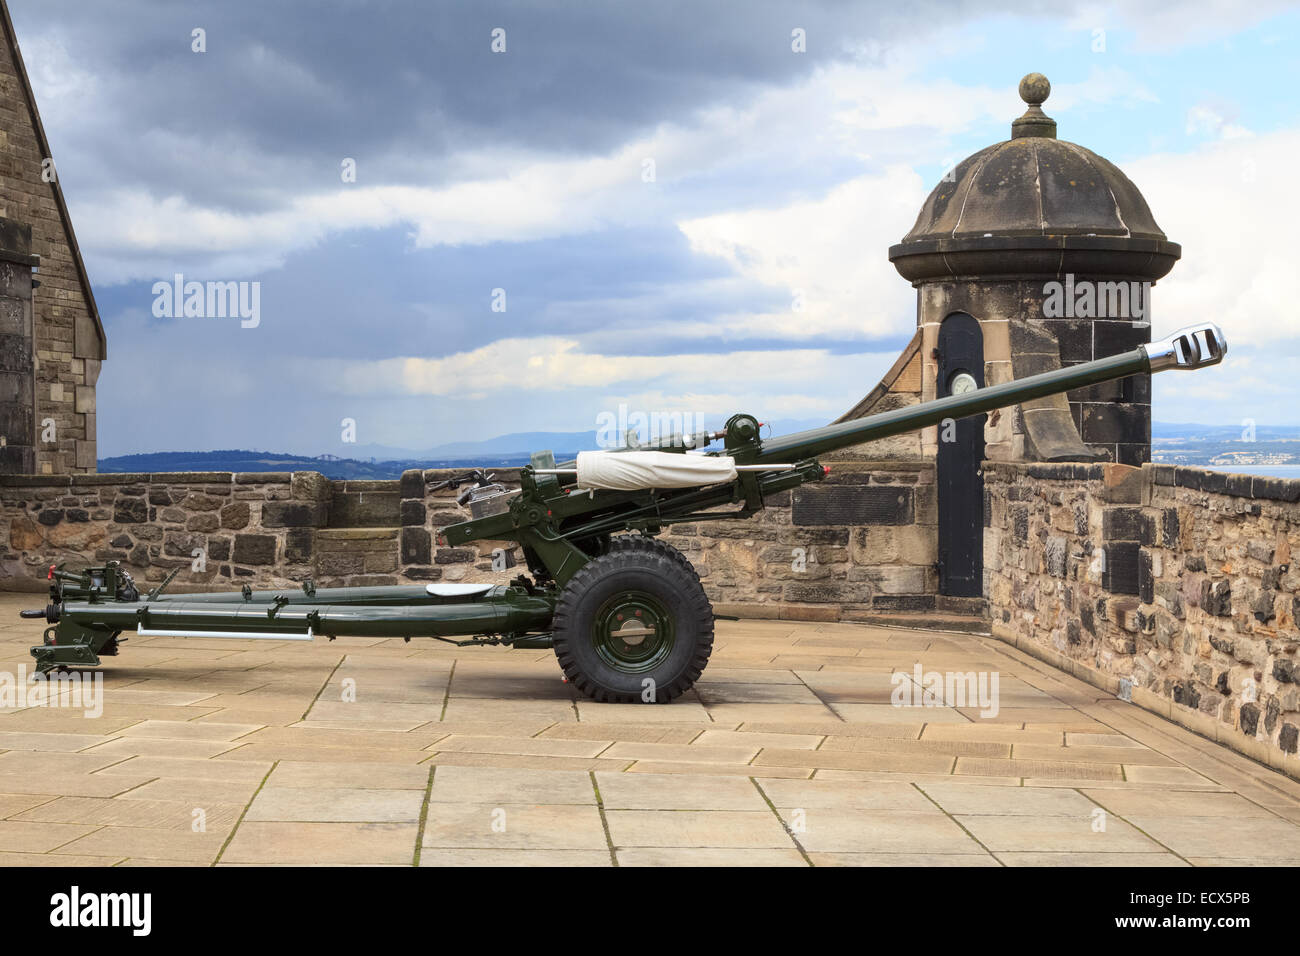 The famous Edinburgh cannon which shoots at one o'clock for correct time keeping at the castle - Stock Image